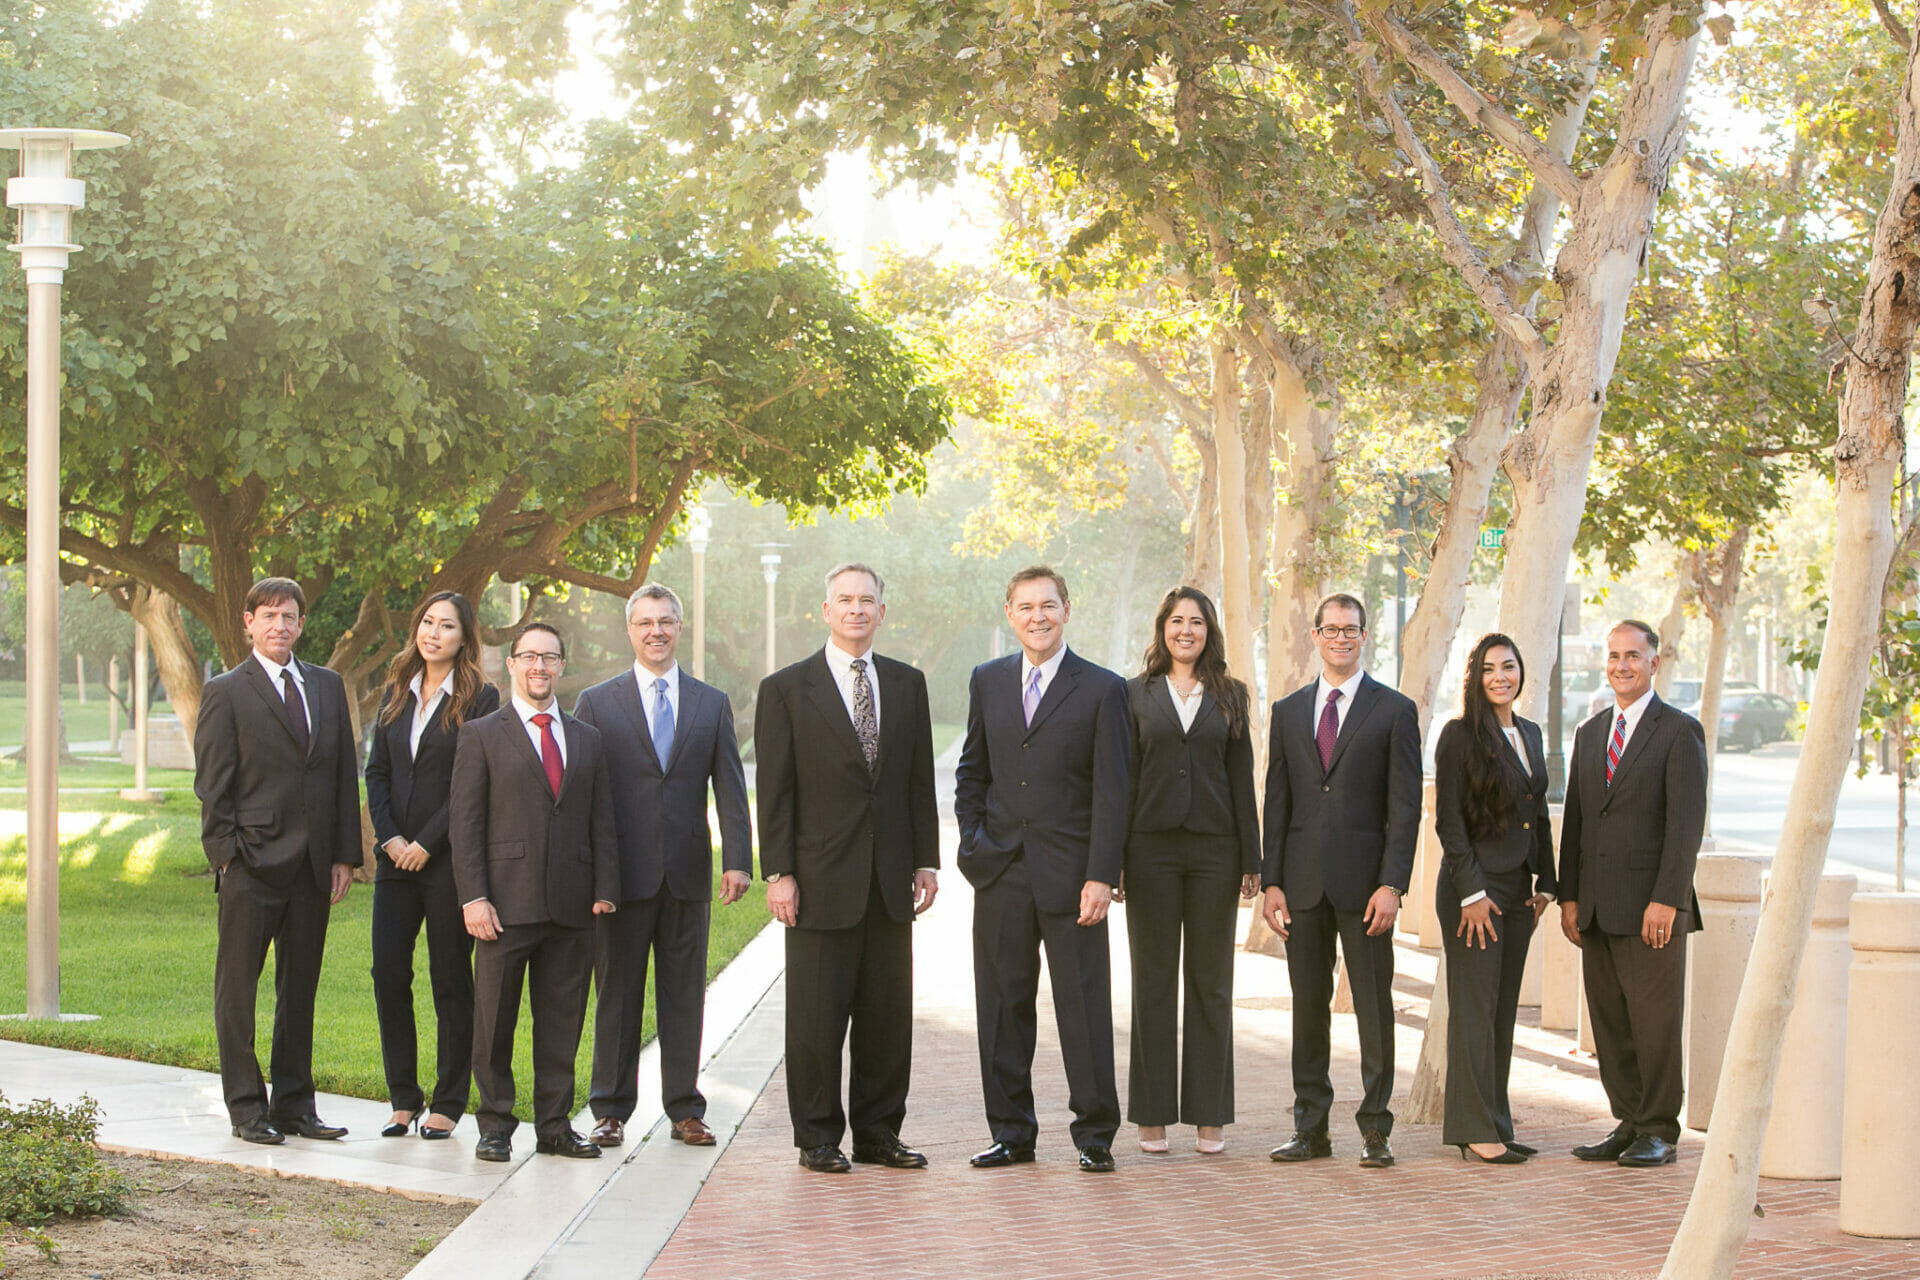 Personal Injury Attorneys in Riverside - The Reeves Law Group